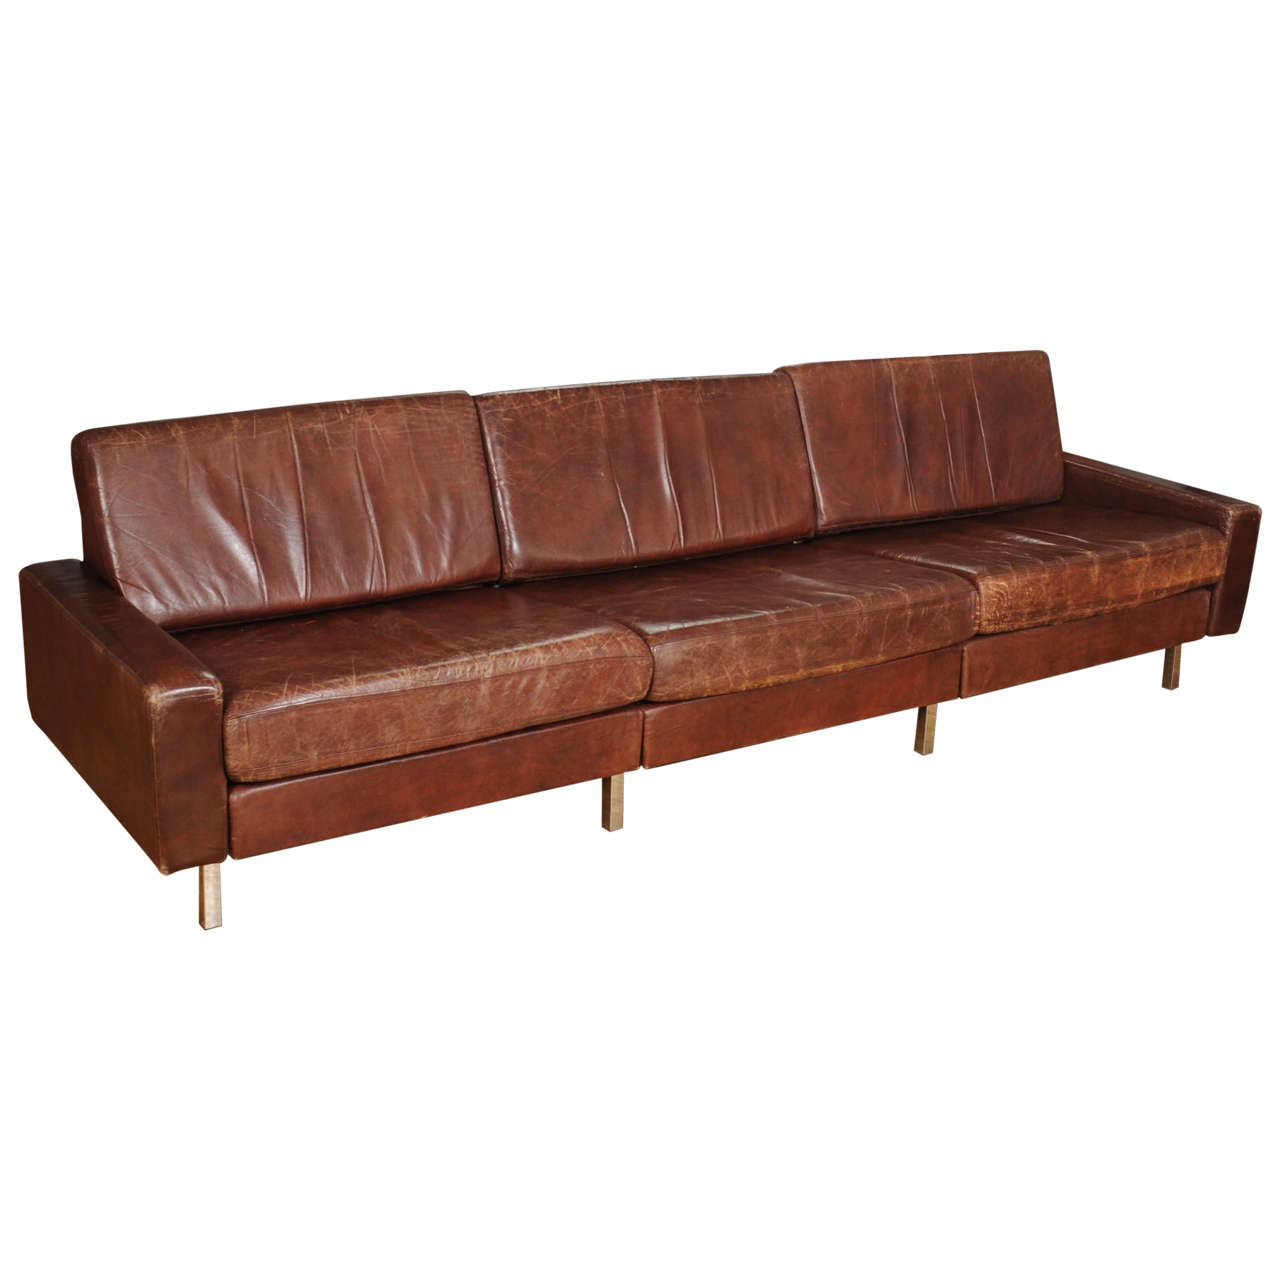 conseta couch by friedrich wilhelm moller for cor at 1stdibs. Black Bedroom Furniture Sets. Home Design Ideas